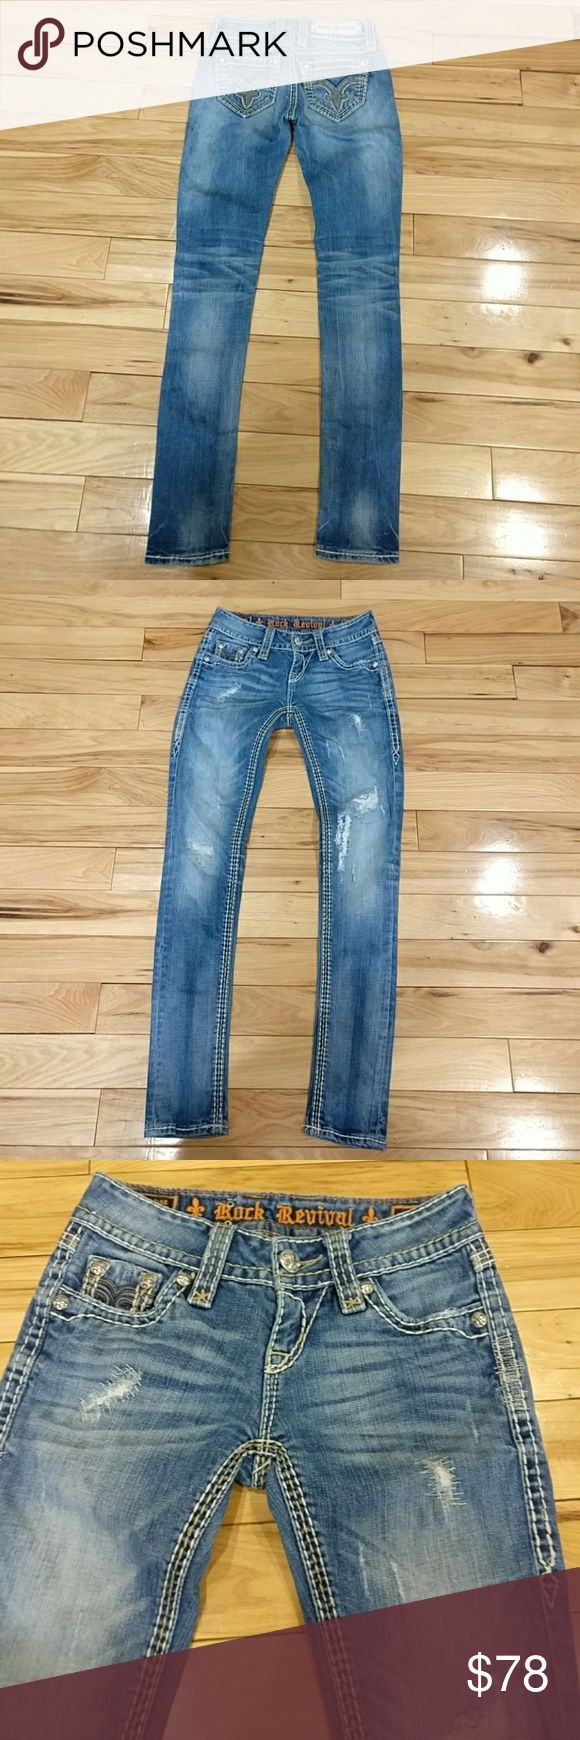 Rock Revival women's jeans size 24X30Denisa skinny Rock Revival women's jeans size 24 X 30 Denisa skinny they are distressed authentic they are in excellent condition I'm selling them at a great price so get them today yeah! Thanks for looking. Rock Revival Jeans Skinny